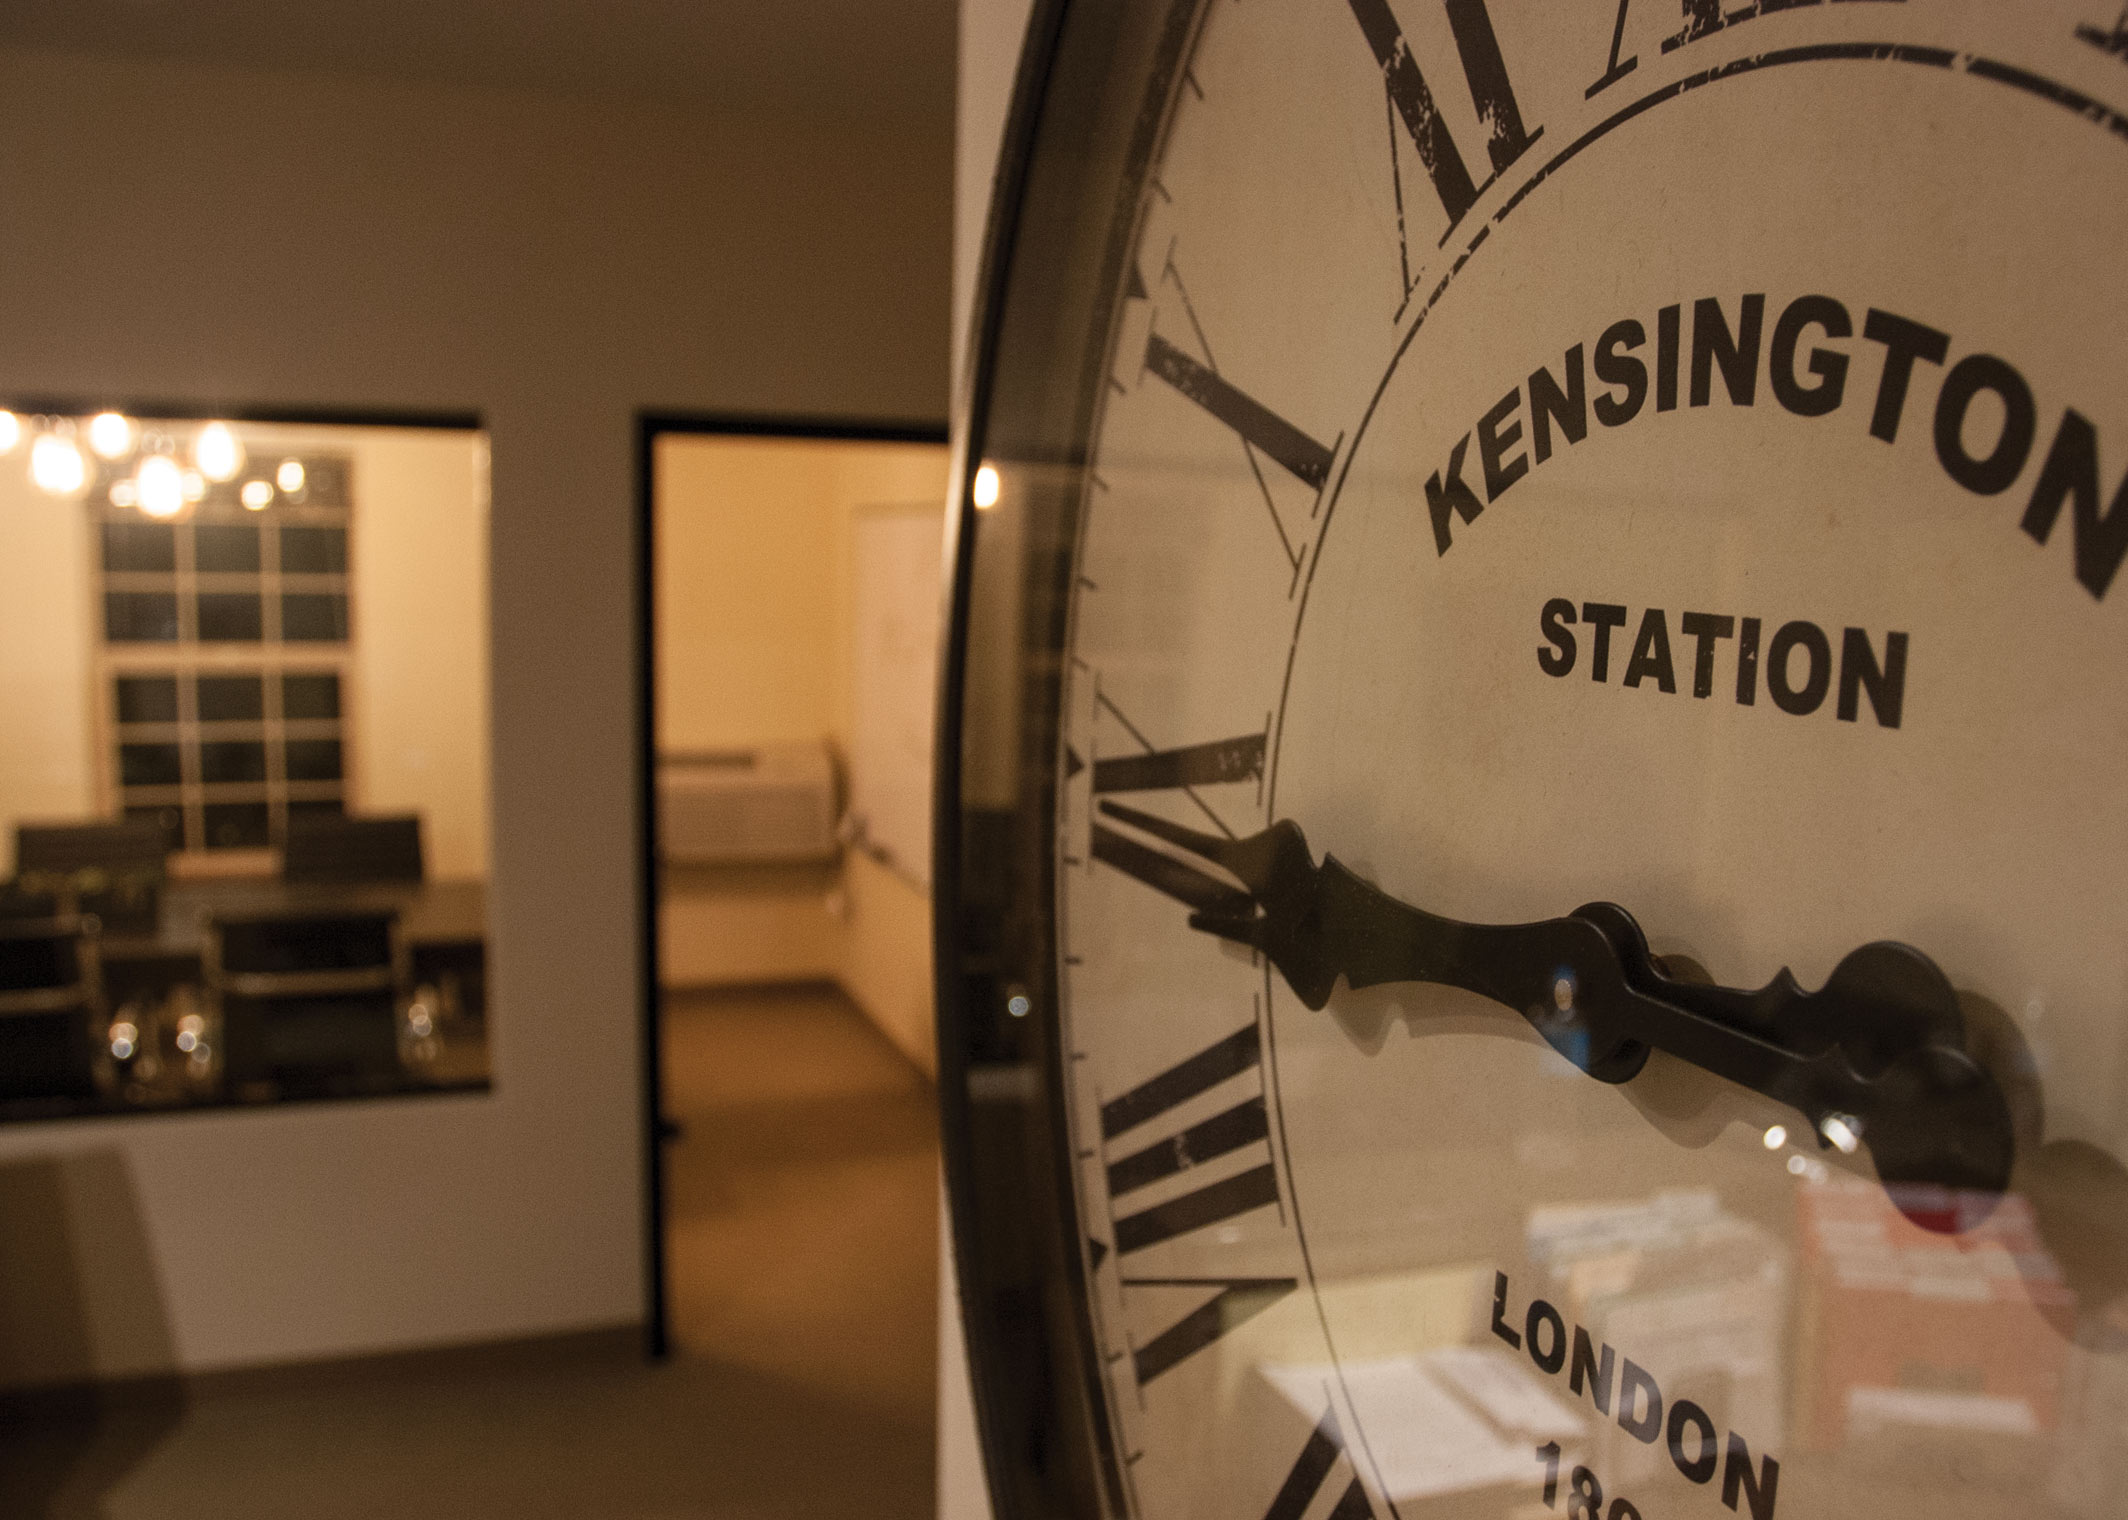 conference room in background, Kensington clock on the wall